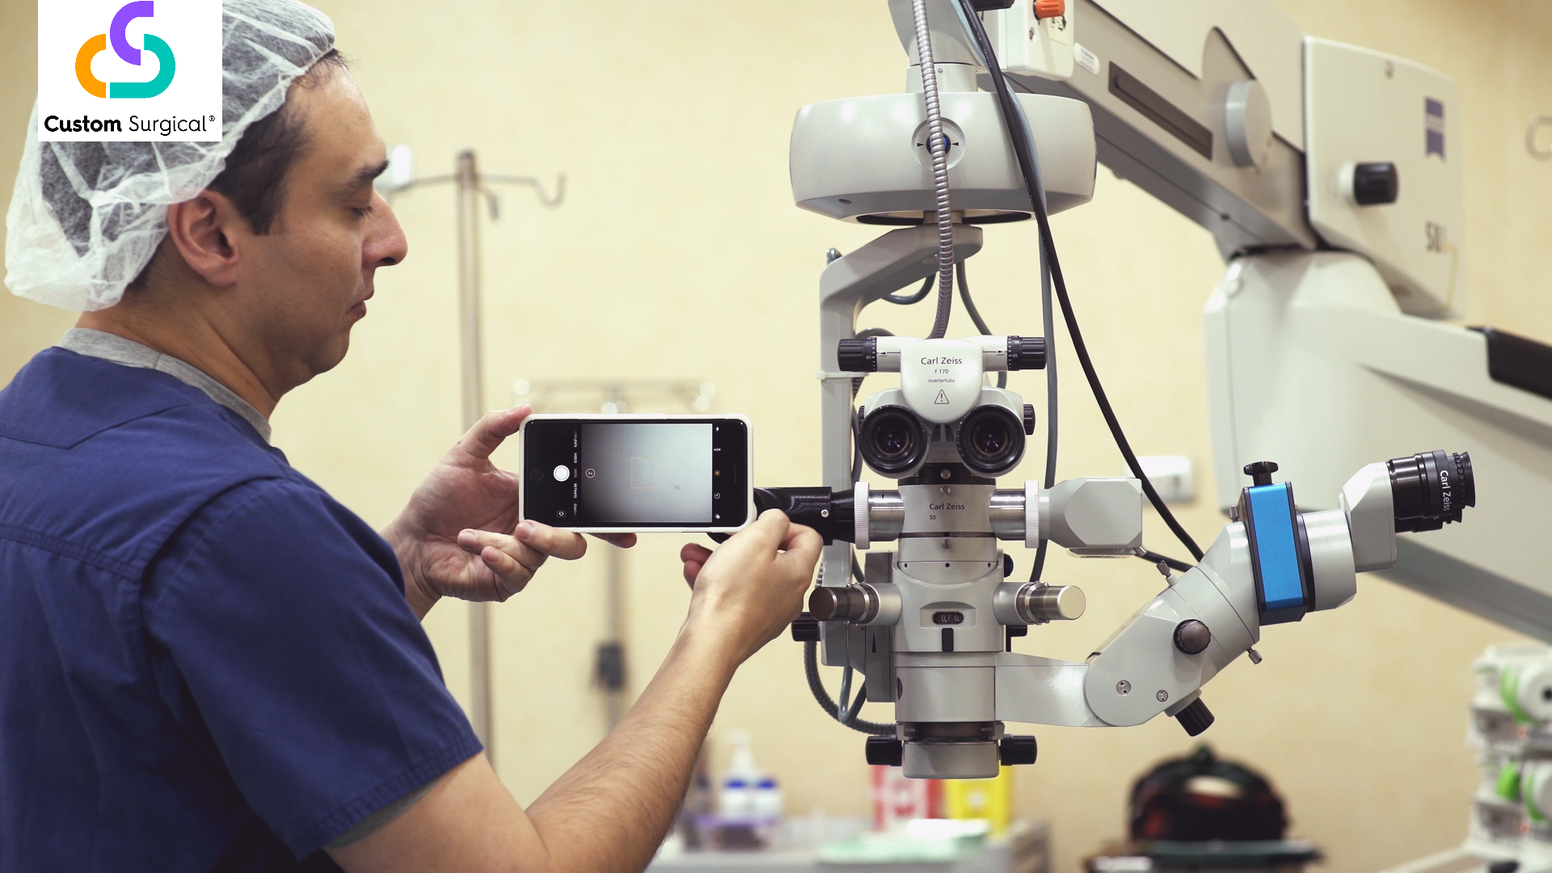 MicroREC is an optic system capable of attaching any smartphone to most of the microscopes on the market.